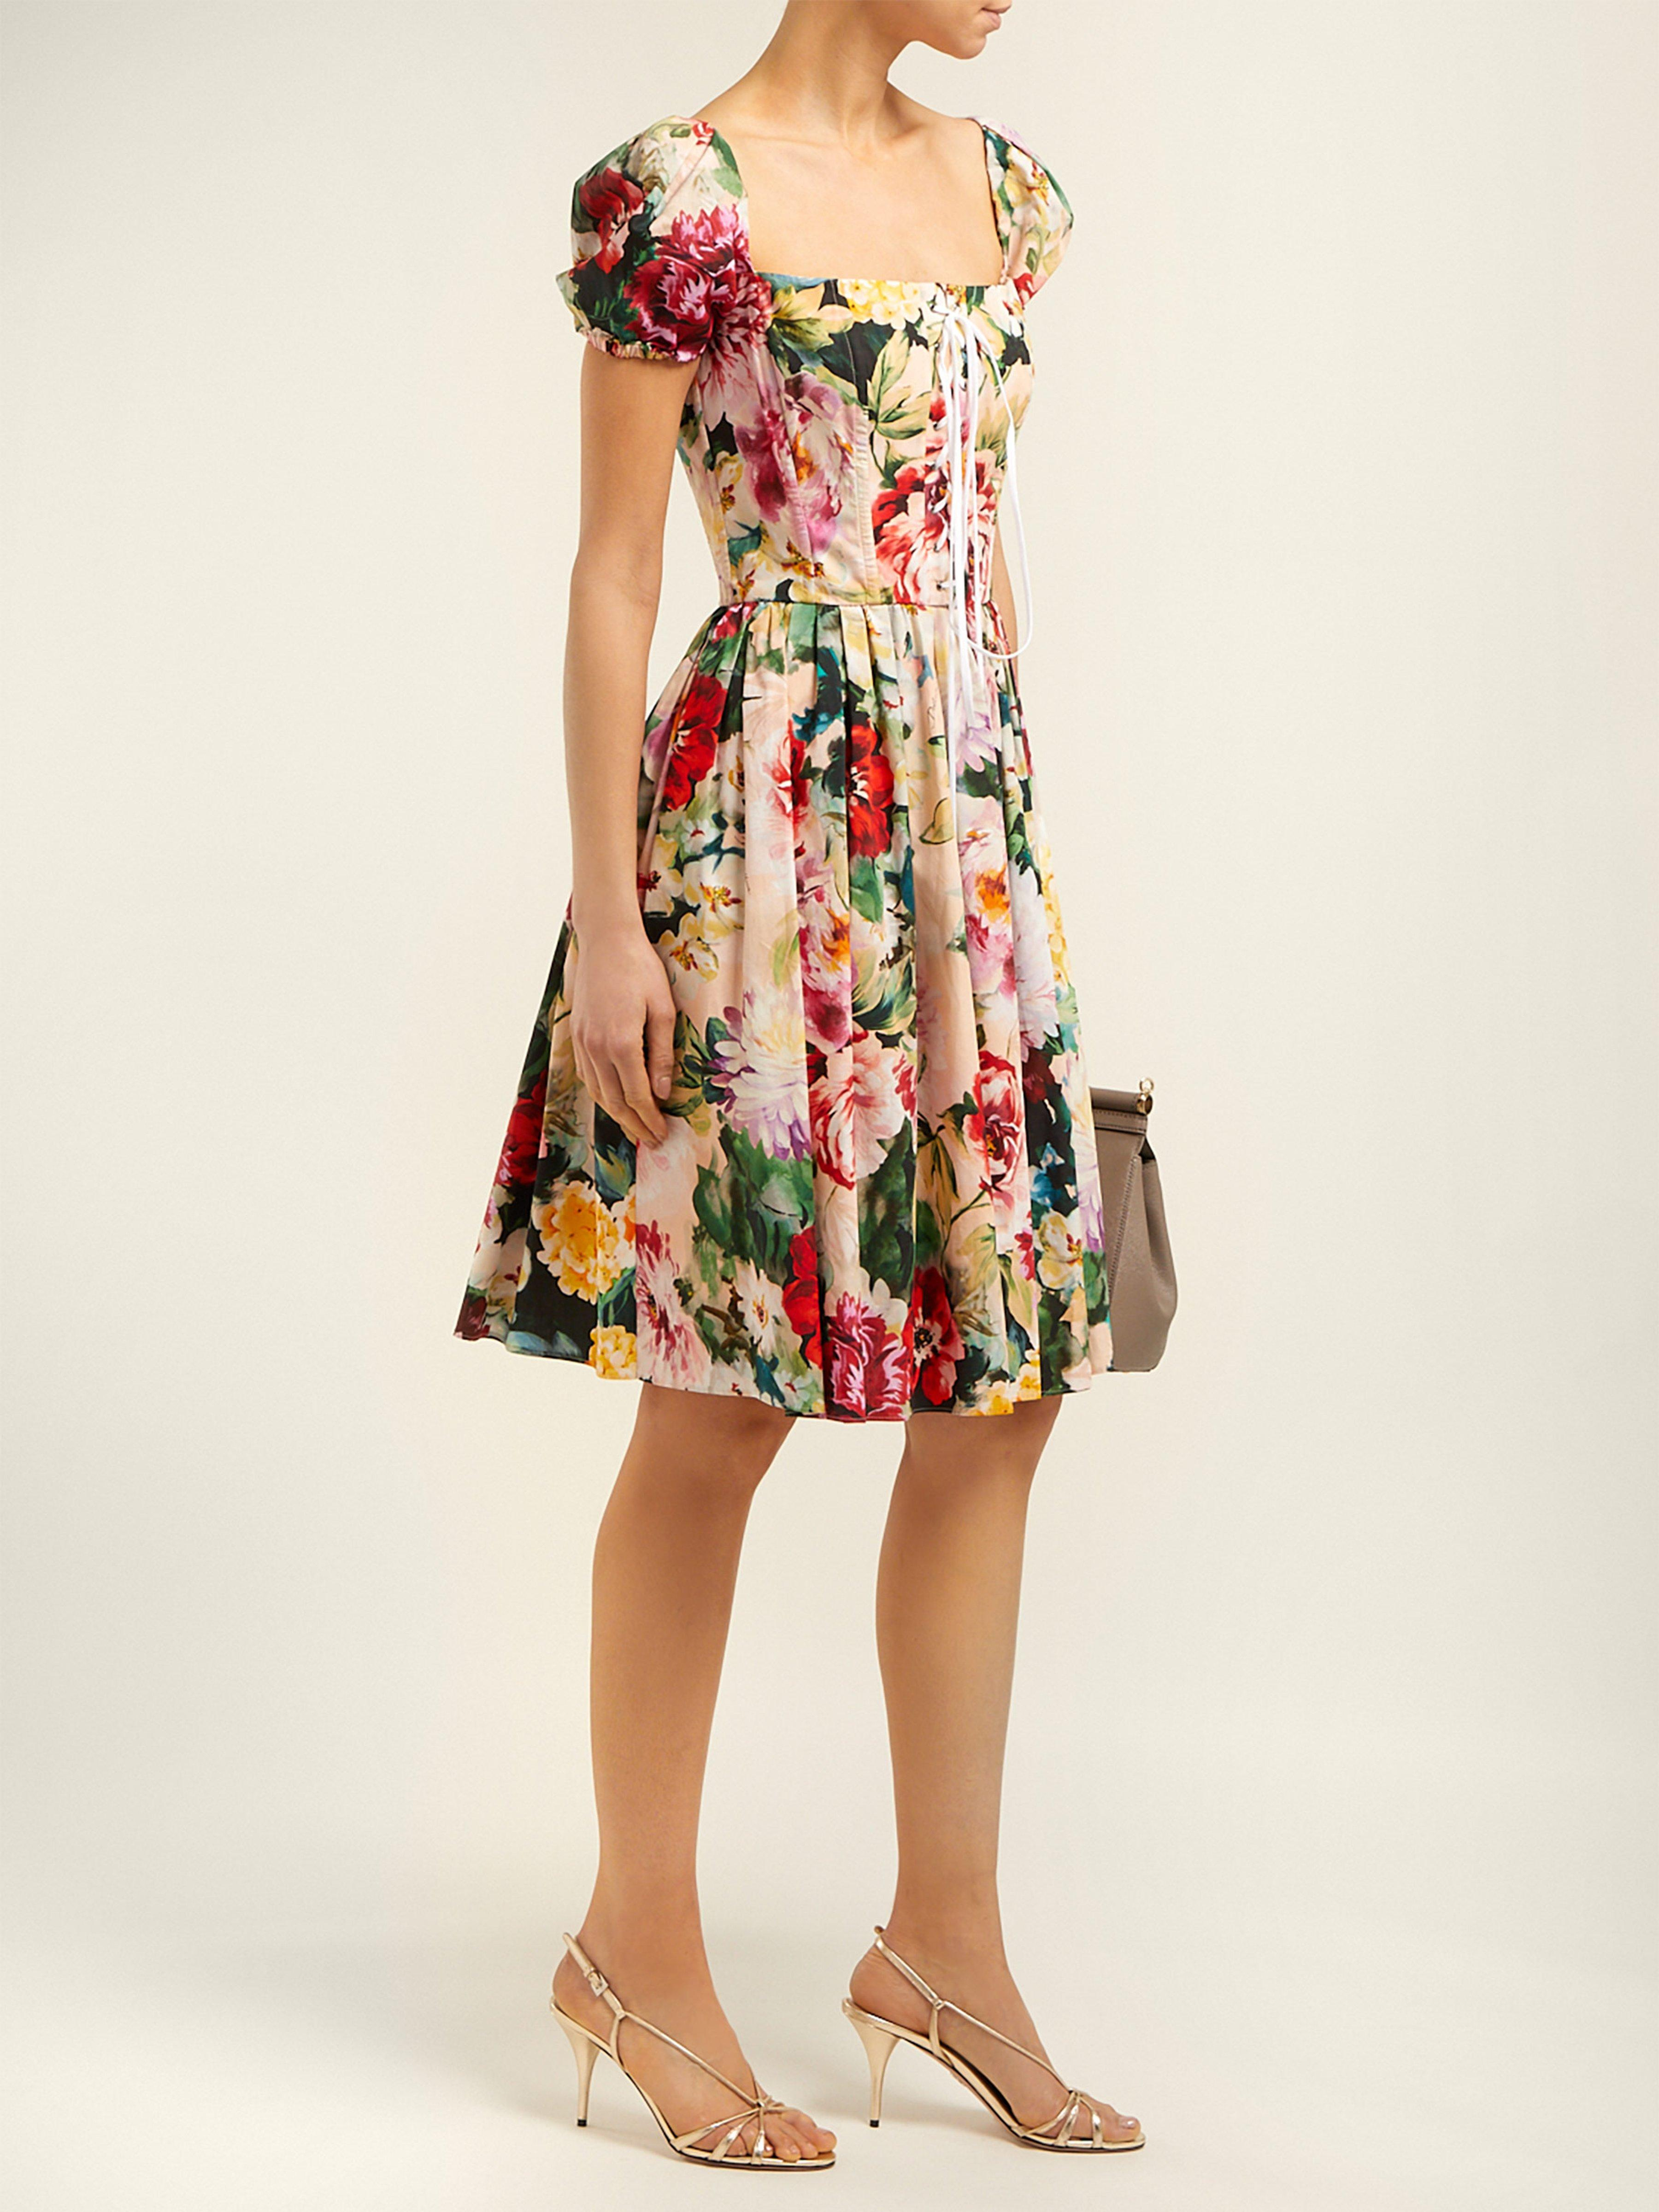 Dolce   Gabbana - Multicolor Floral Cotton Minidress - Lyst. View fullscreen 652aa90e1